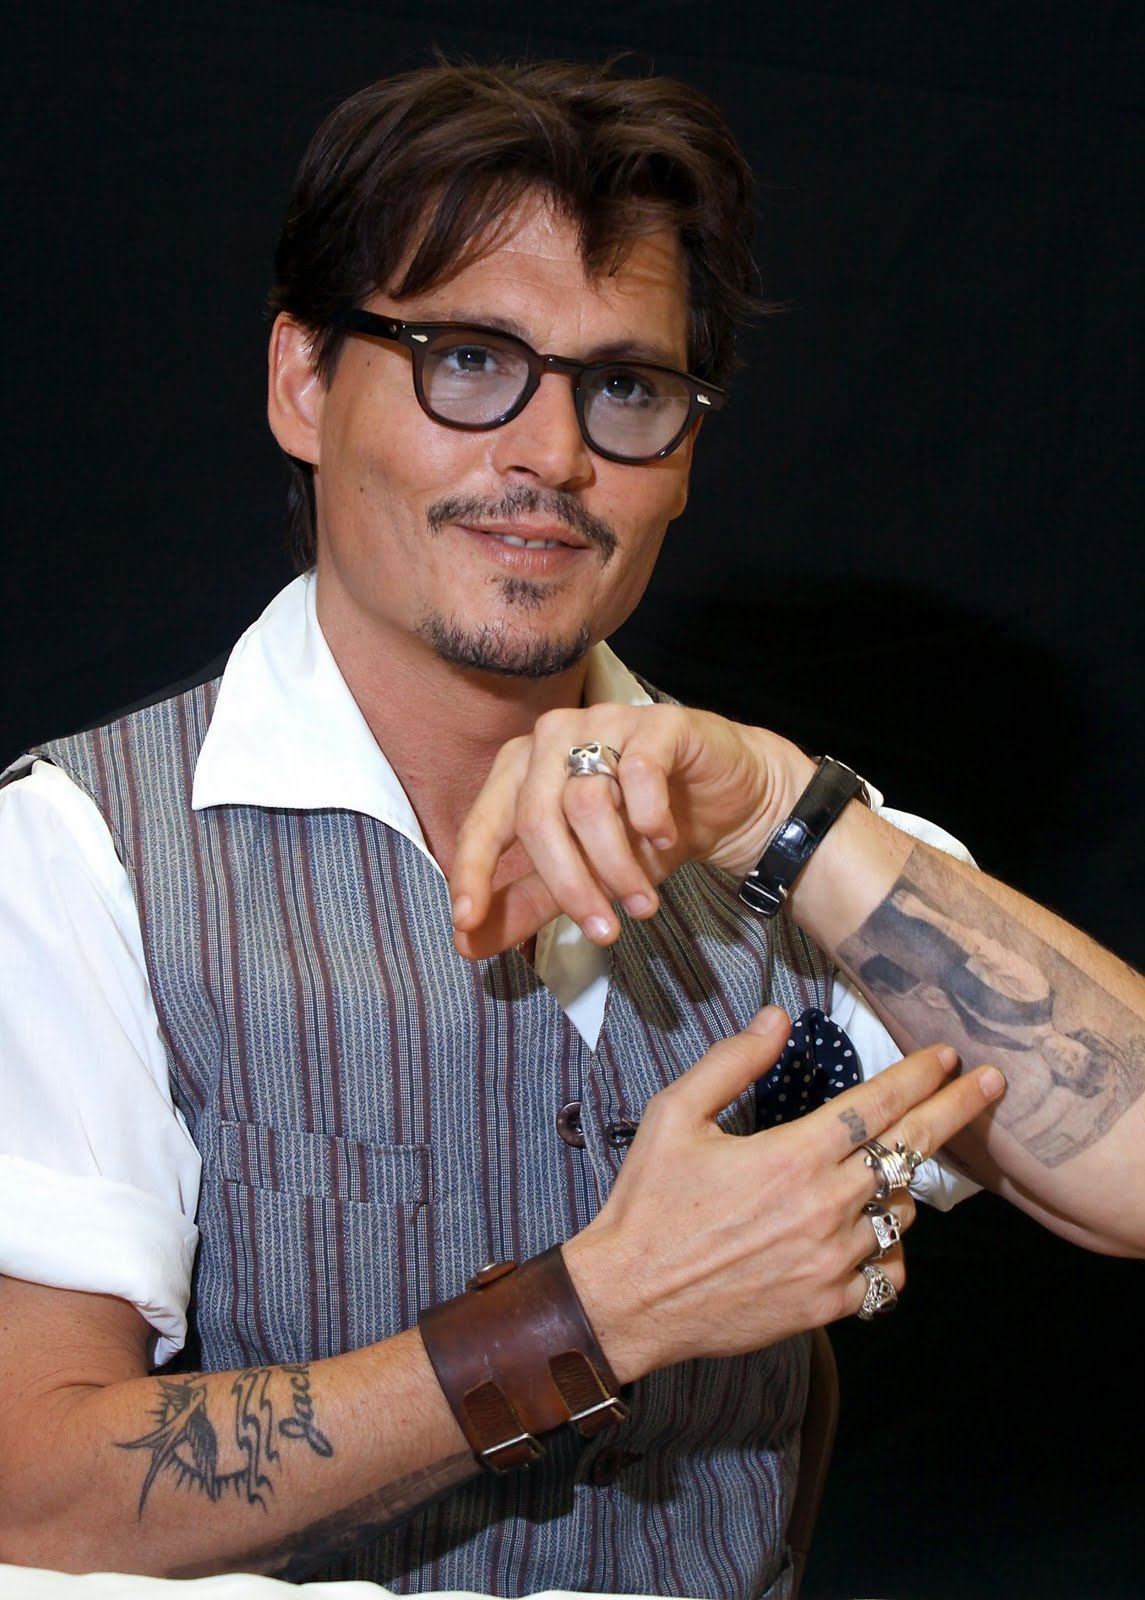 http://1.bp.blogspot.com/-I4oZBK6CJXM/TdqoWL6mW-I/AAAAAAAAEb4/gPEDRpYv0F0/s1600/JOHNNY-DEPP-Press-Conferences-Pirates-of-the-Caribbean-4-Los-Angeles-04-05-2011-johnny-depp-21881306-1465-2048.jpg